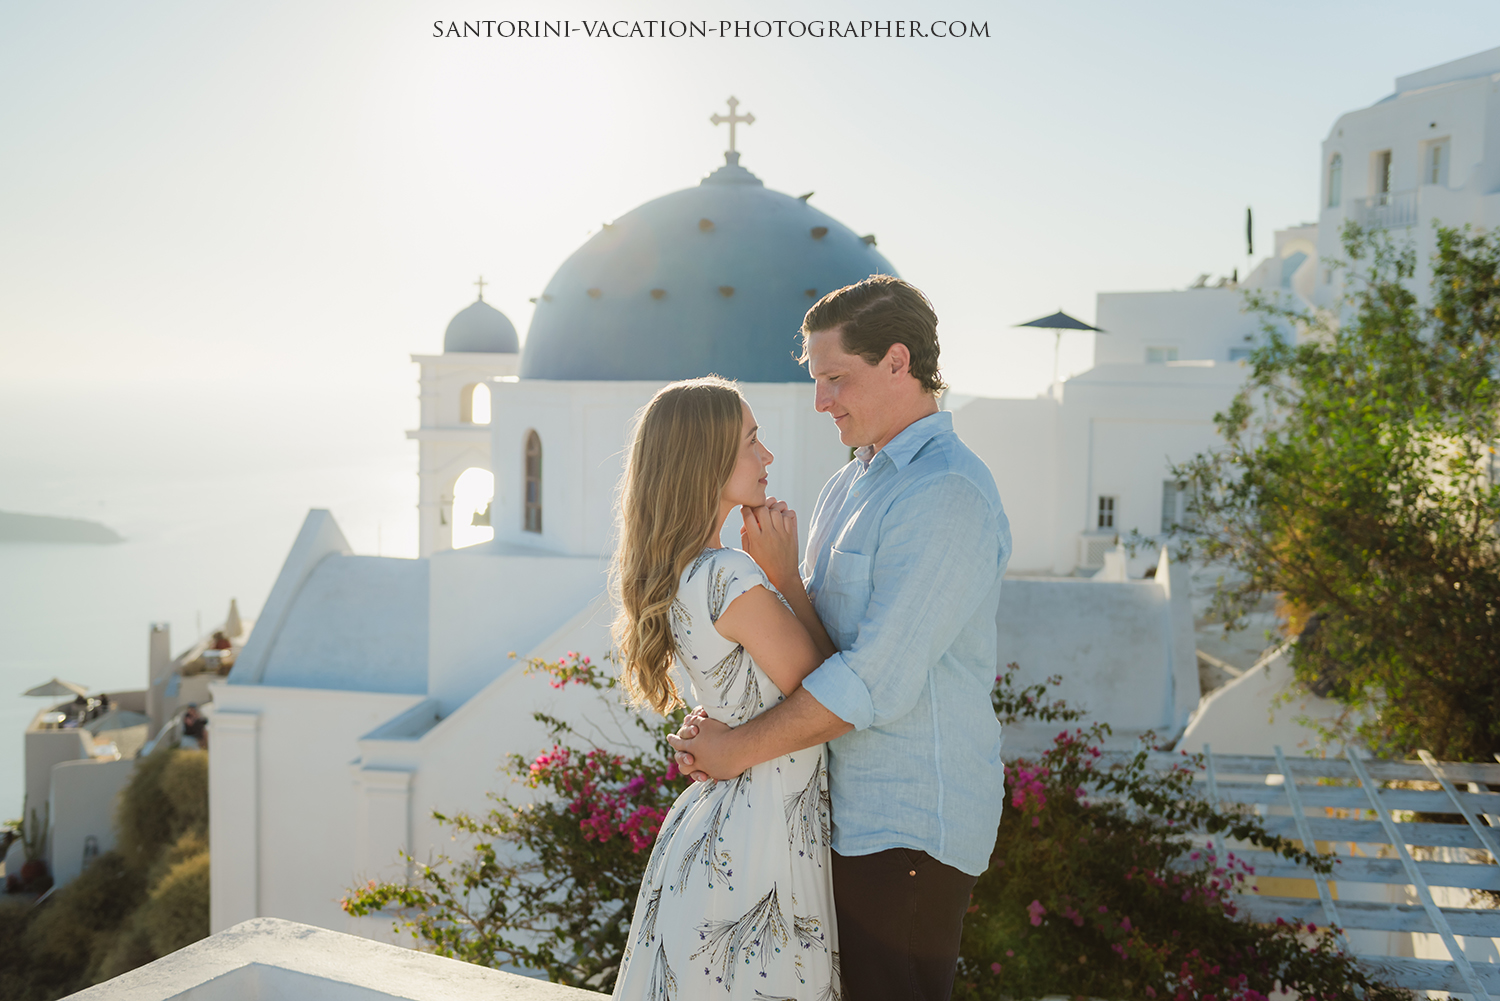 santorini-photographer-Anna-Sulte-photo-session